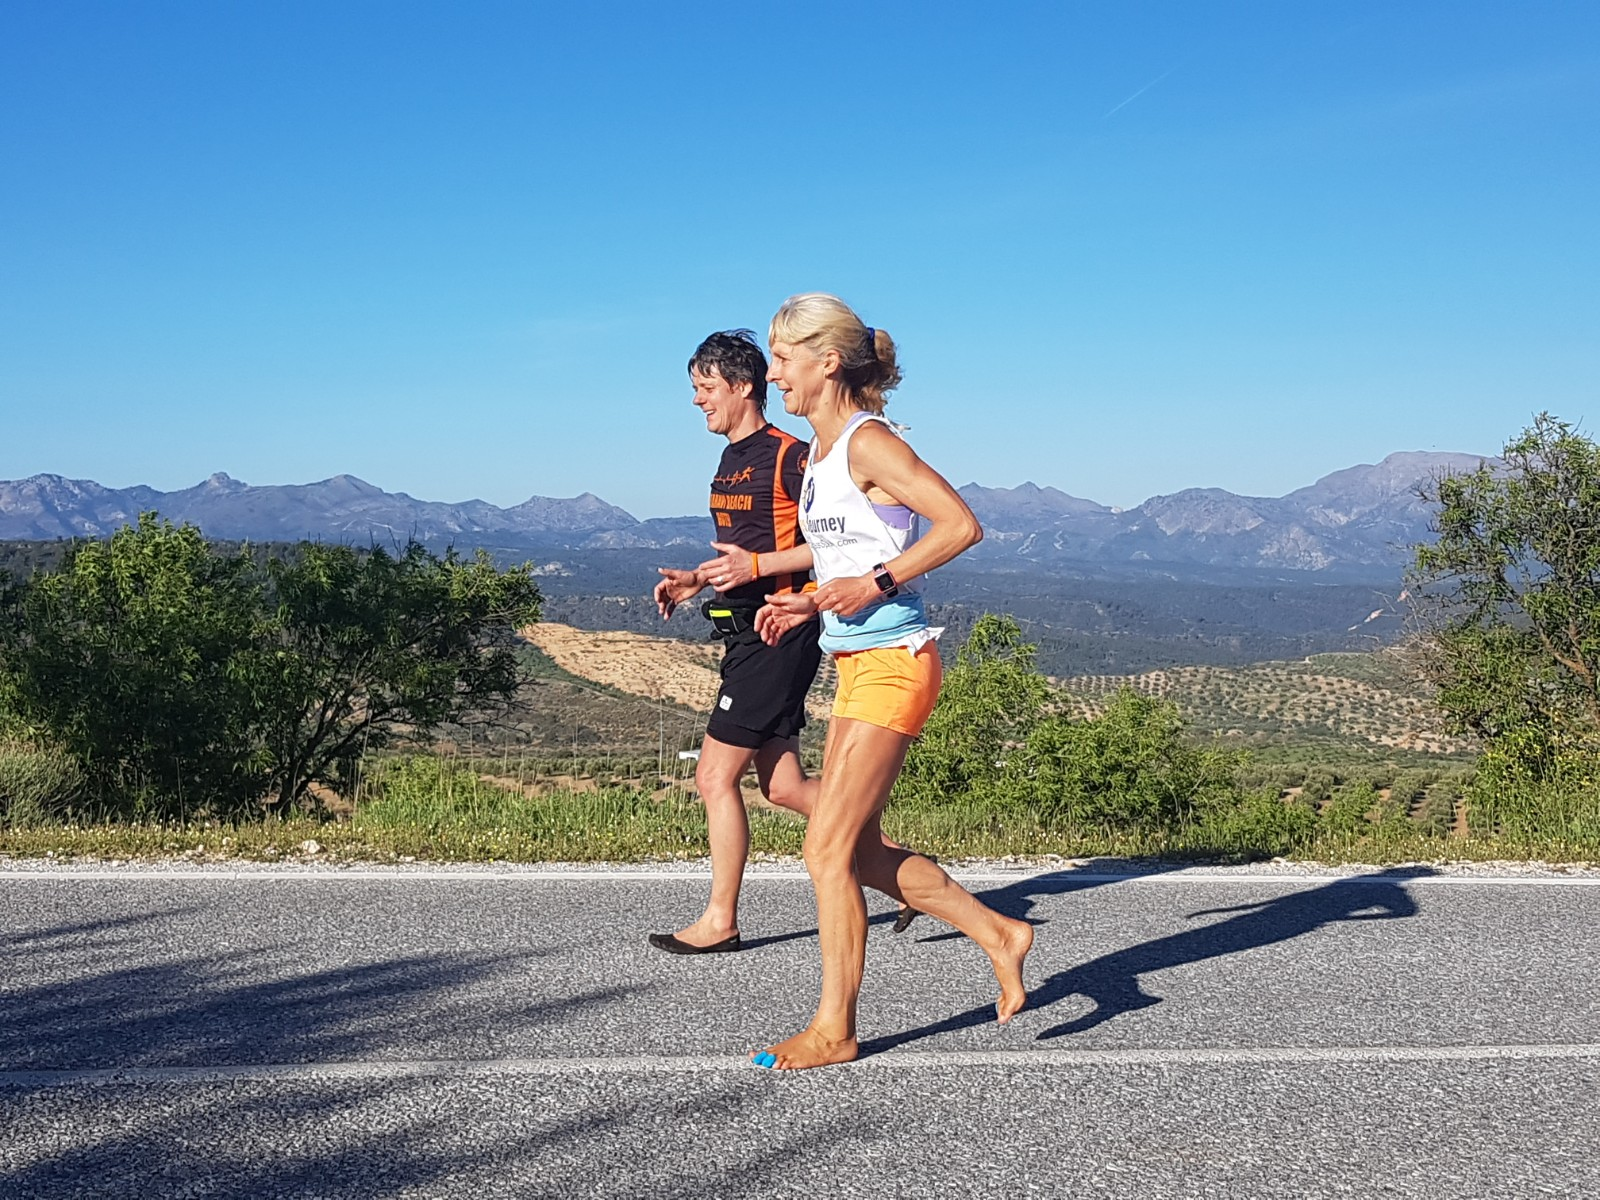 Anadi interviews Julia about her preparation to run Barefoot Across Spain